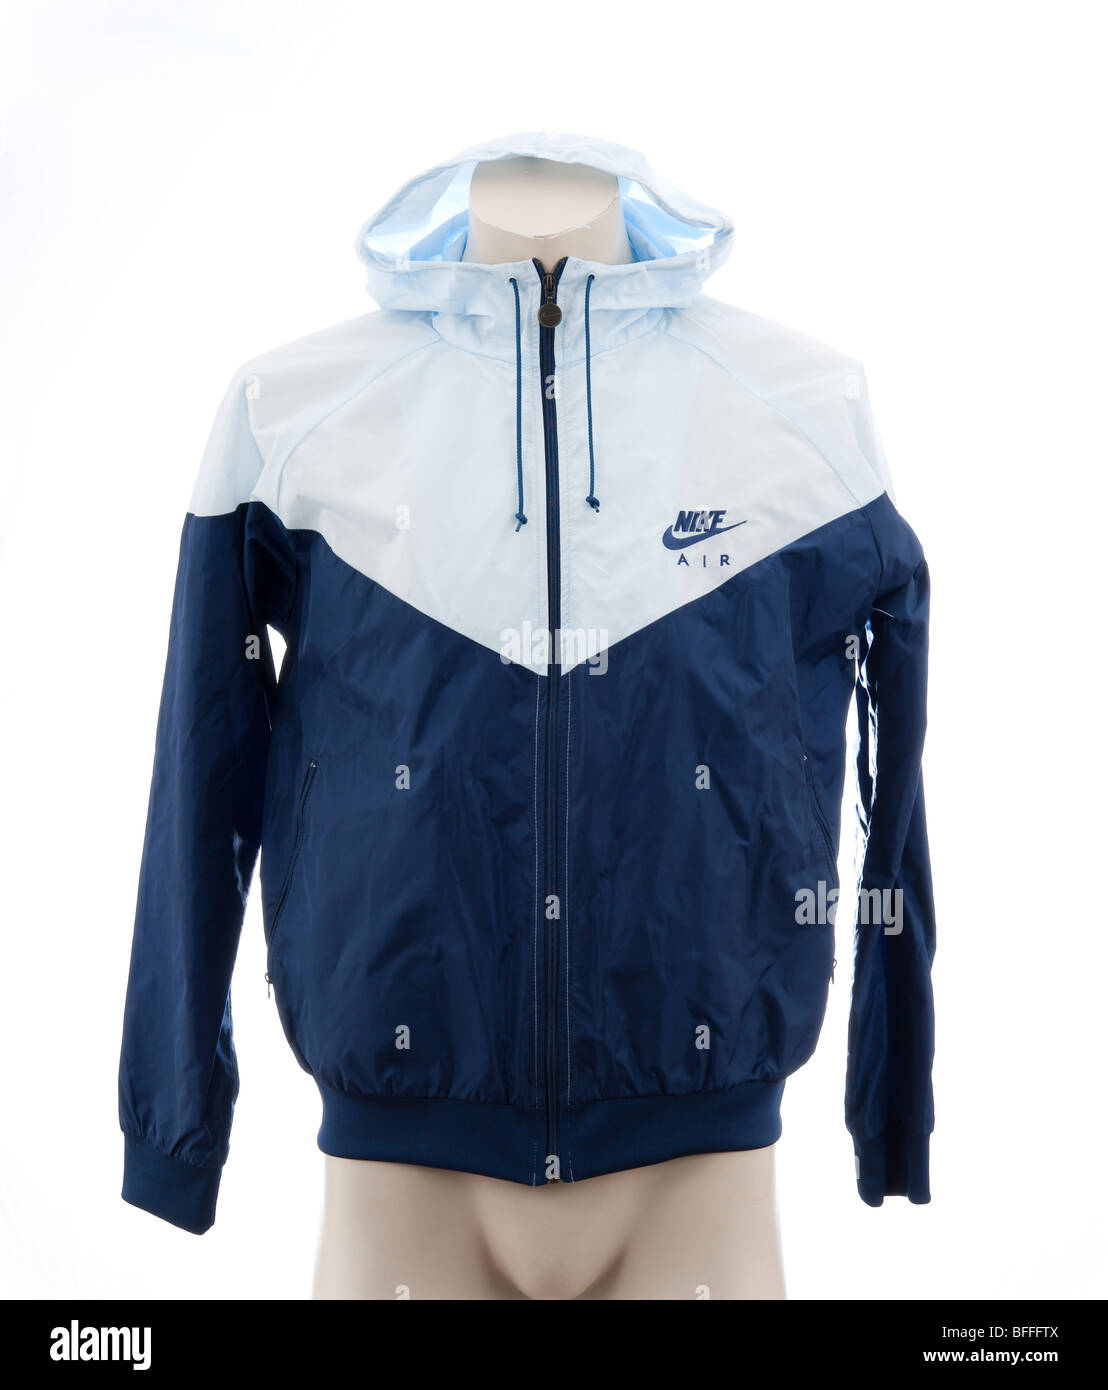 Nike windrunner mens jacket c3caa7537058